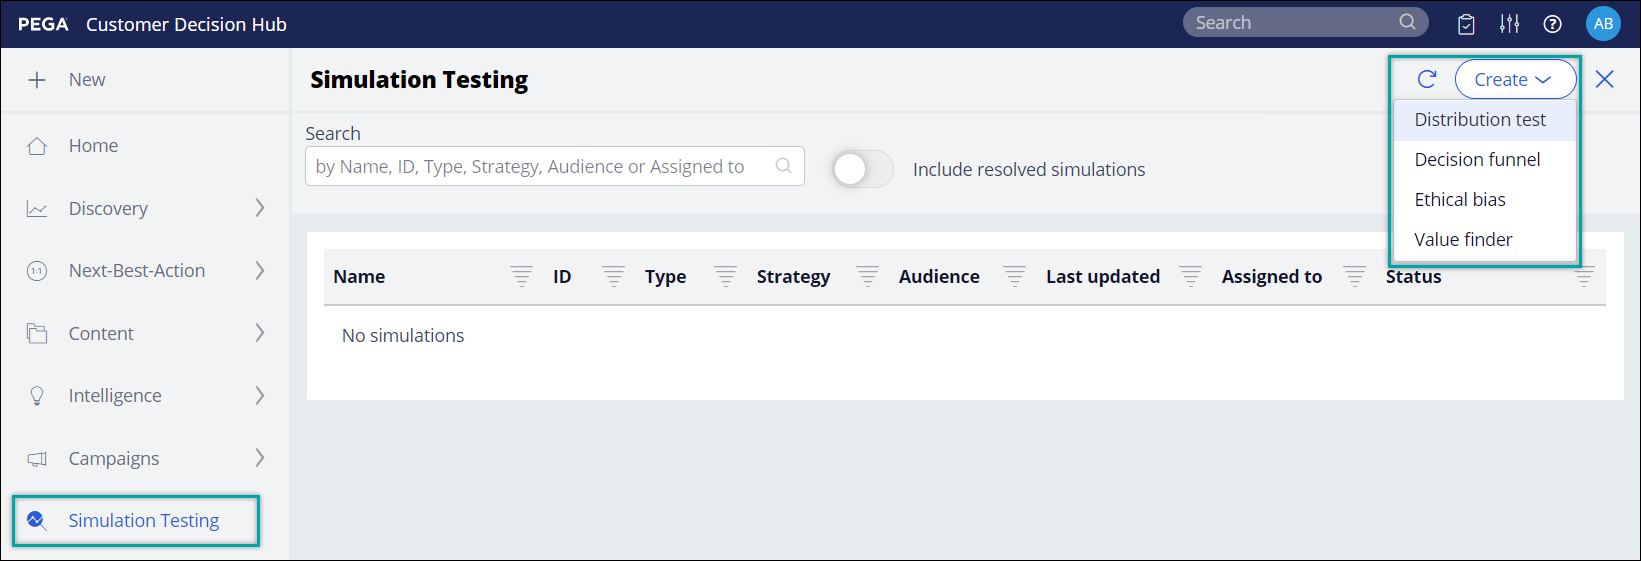 The available test types under the Create button on the Simulation Testing                 landing page